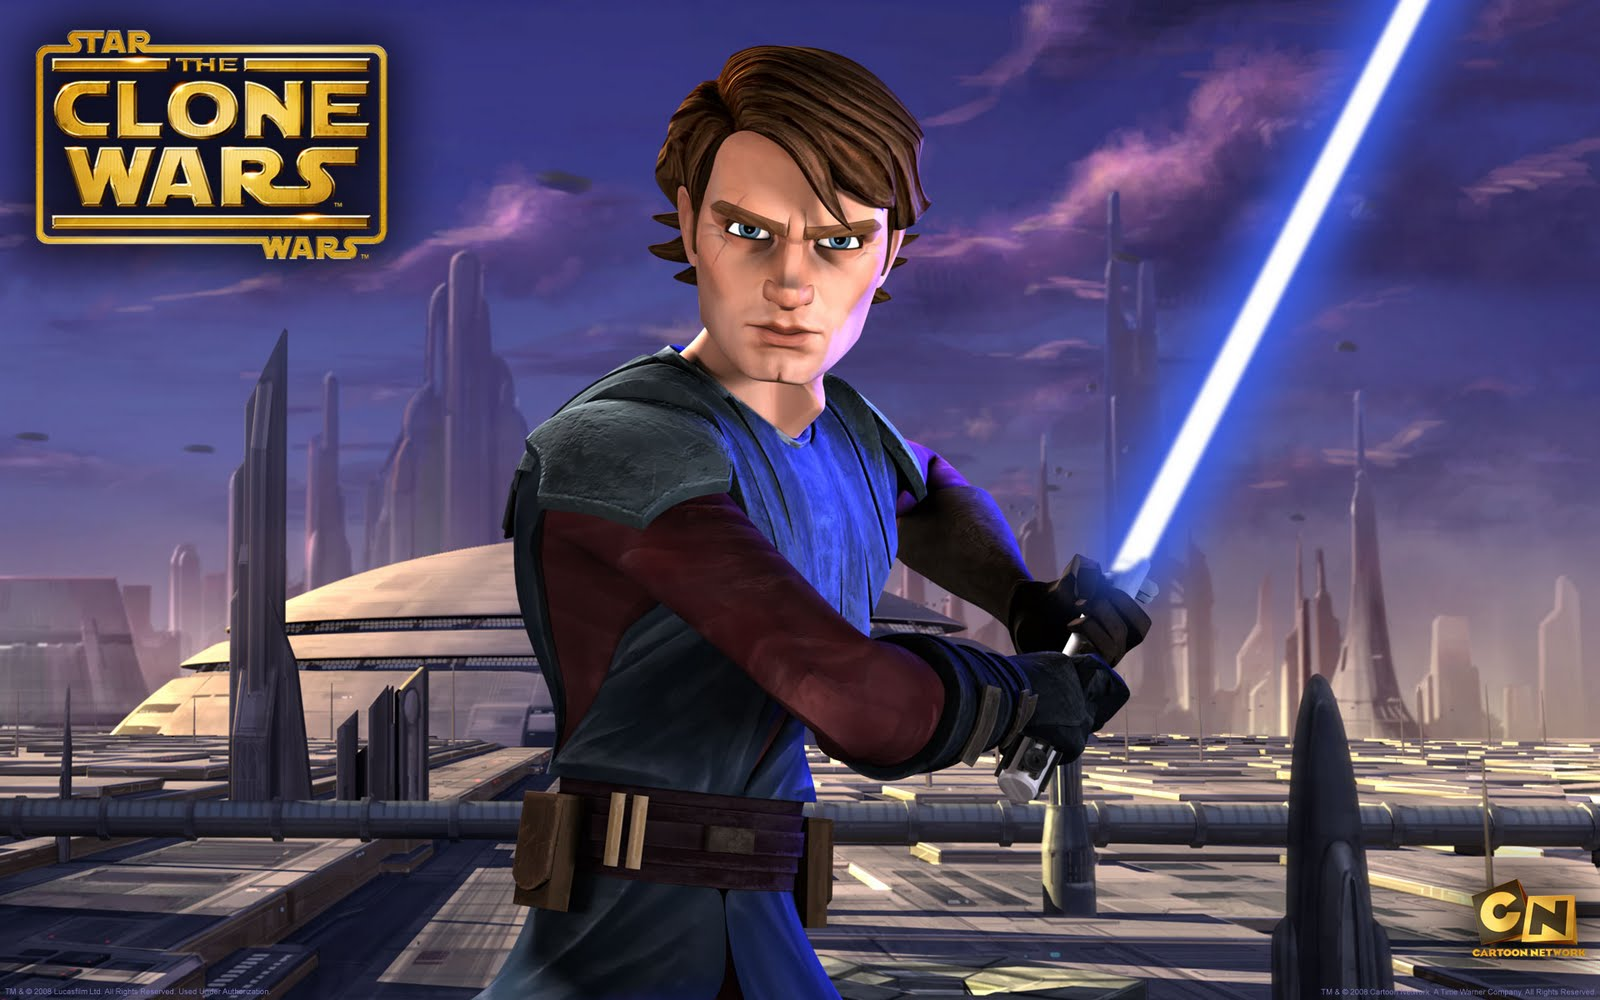 http://2.bp.blogspot.com/_3t8EIy7gcPE/TVLHTf3wPoI/AAAAAAAAAF4/aZ-W2eQ6Xcw/s1600/star-wars-the-clone-wars-anakin-skywalker-wallpaper.jpg